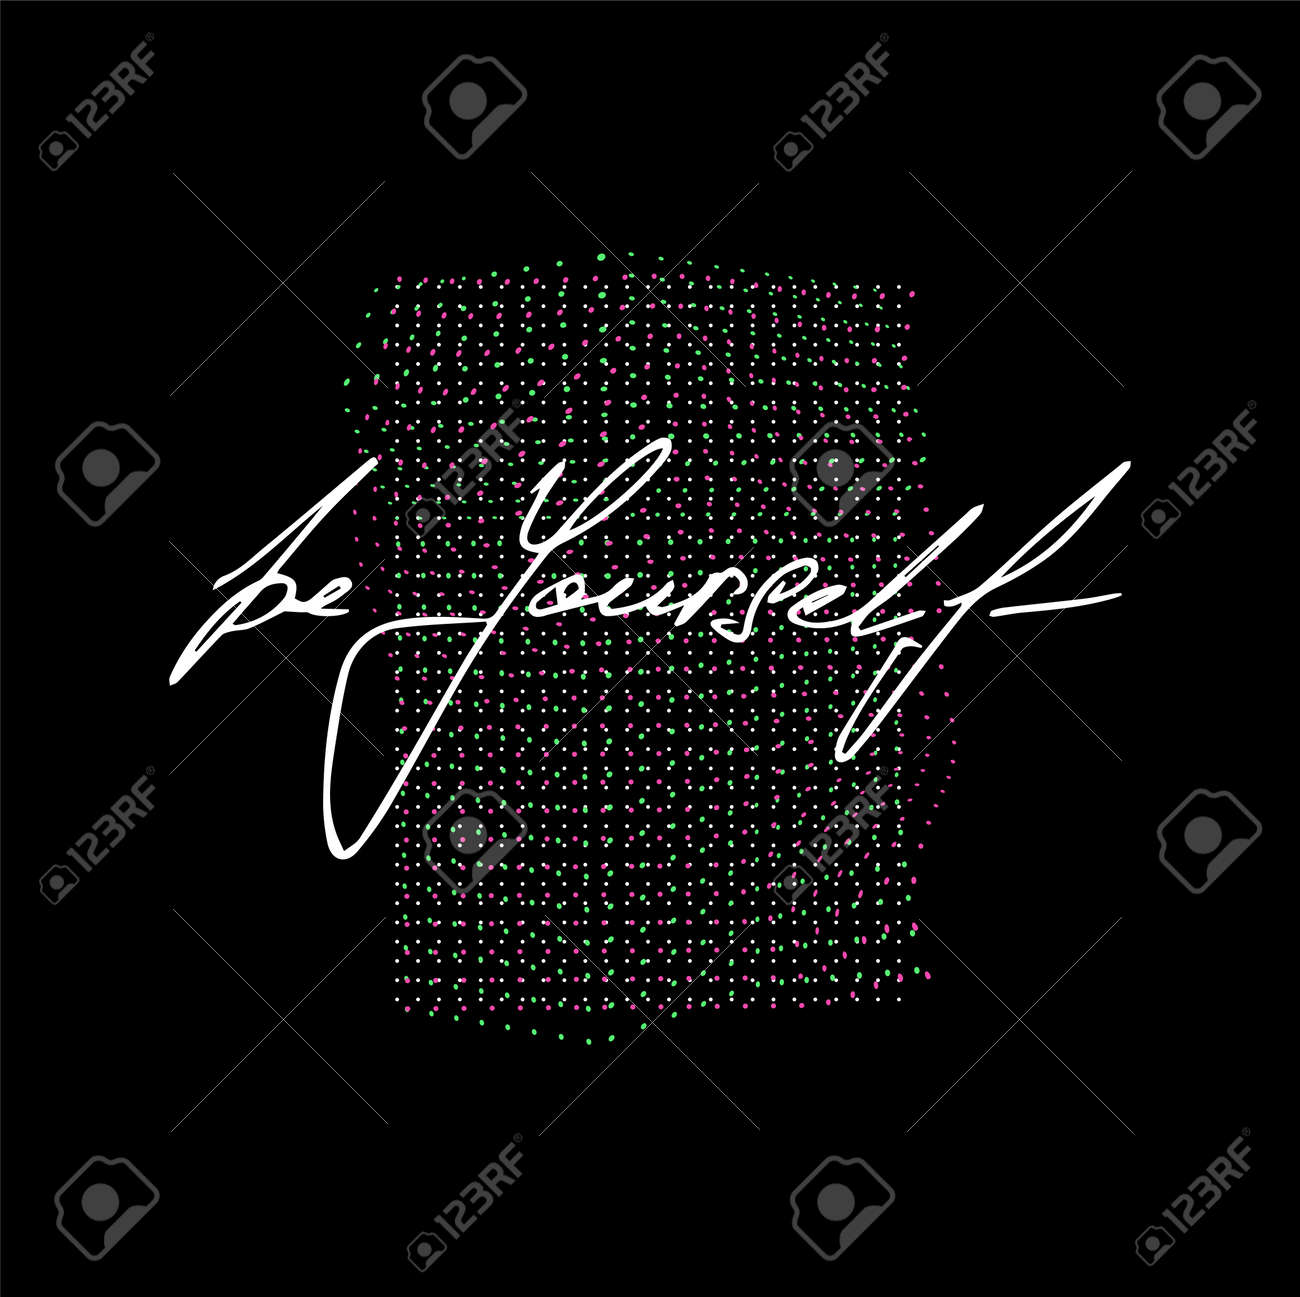 Be yourself with abstract shapes and black backgrounds. T-shirt print with deep meaning. Vaporwave in memphis elements with slogan - be yourself. Typography print for merch, apparel, t-shirt. Vector - 169523096